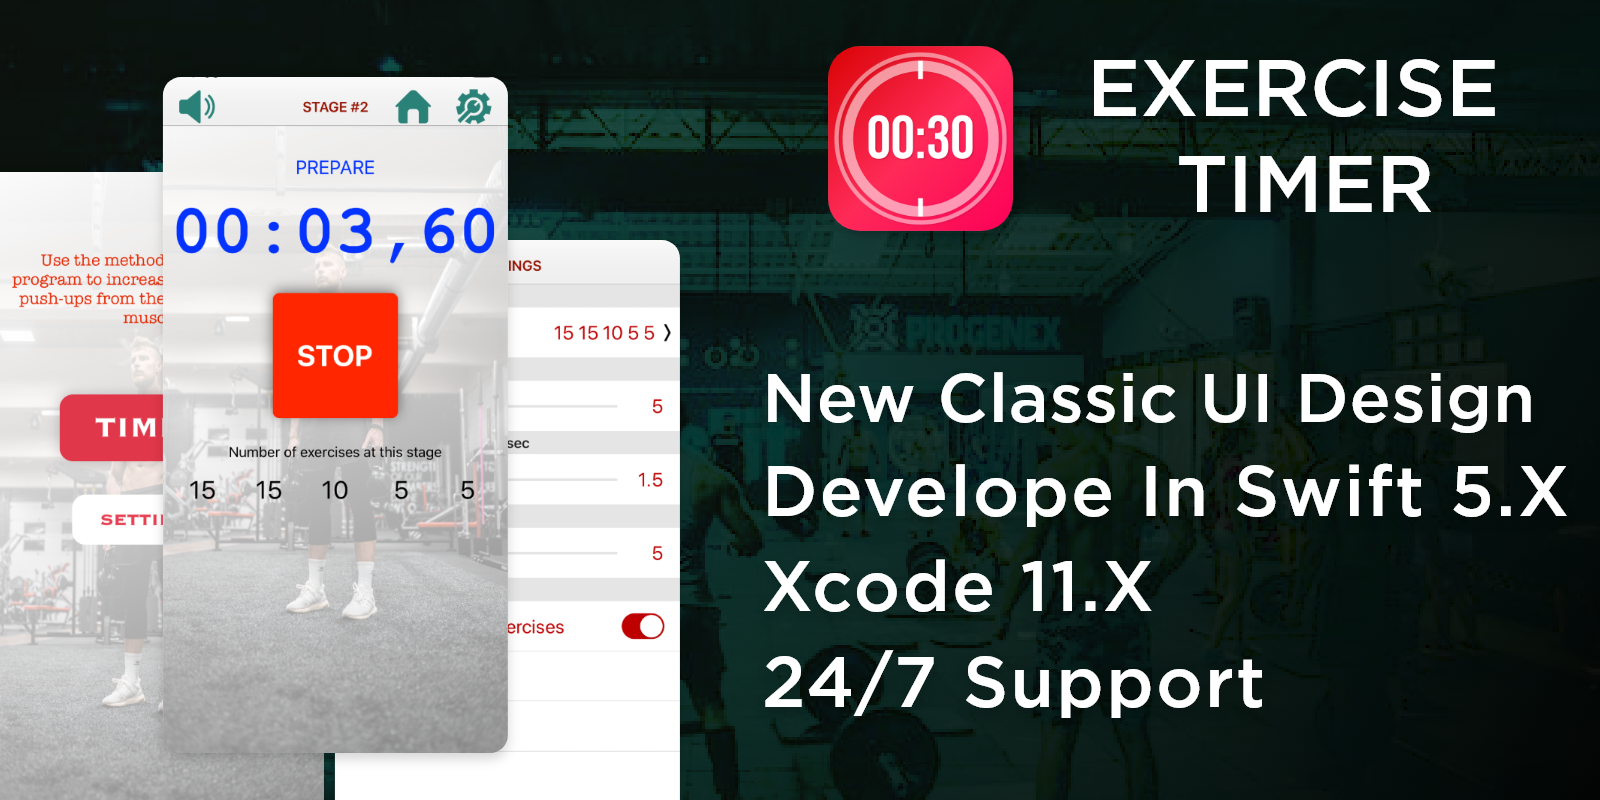 Timer - Exercise Timer - iOS Source Code - 2